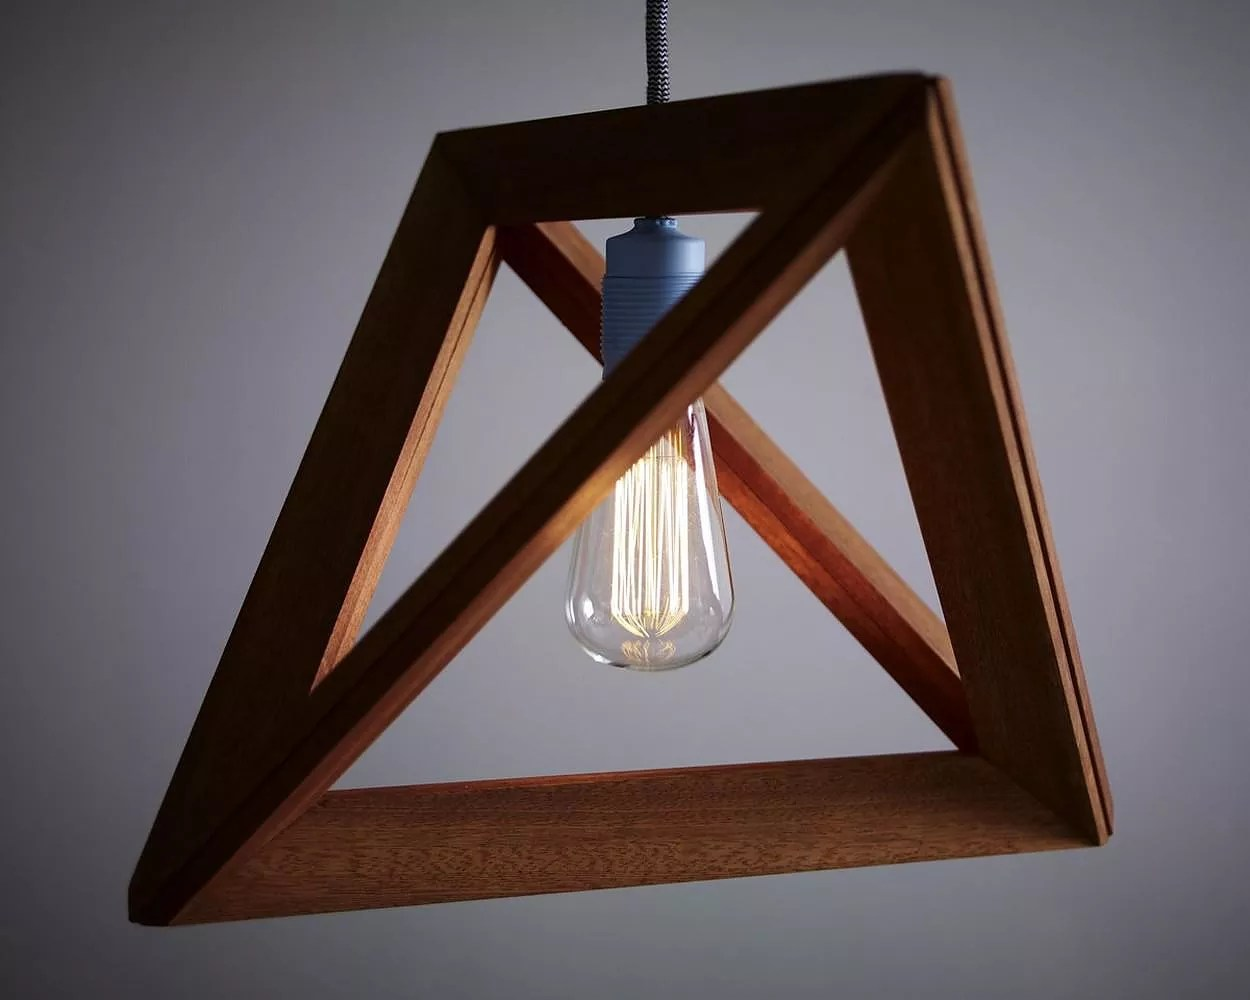 Wooden Light Post Designs Lightframe Wooden Pendant Lamp By Herr Mandel Design Is